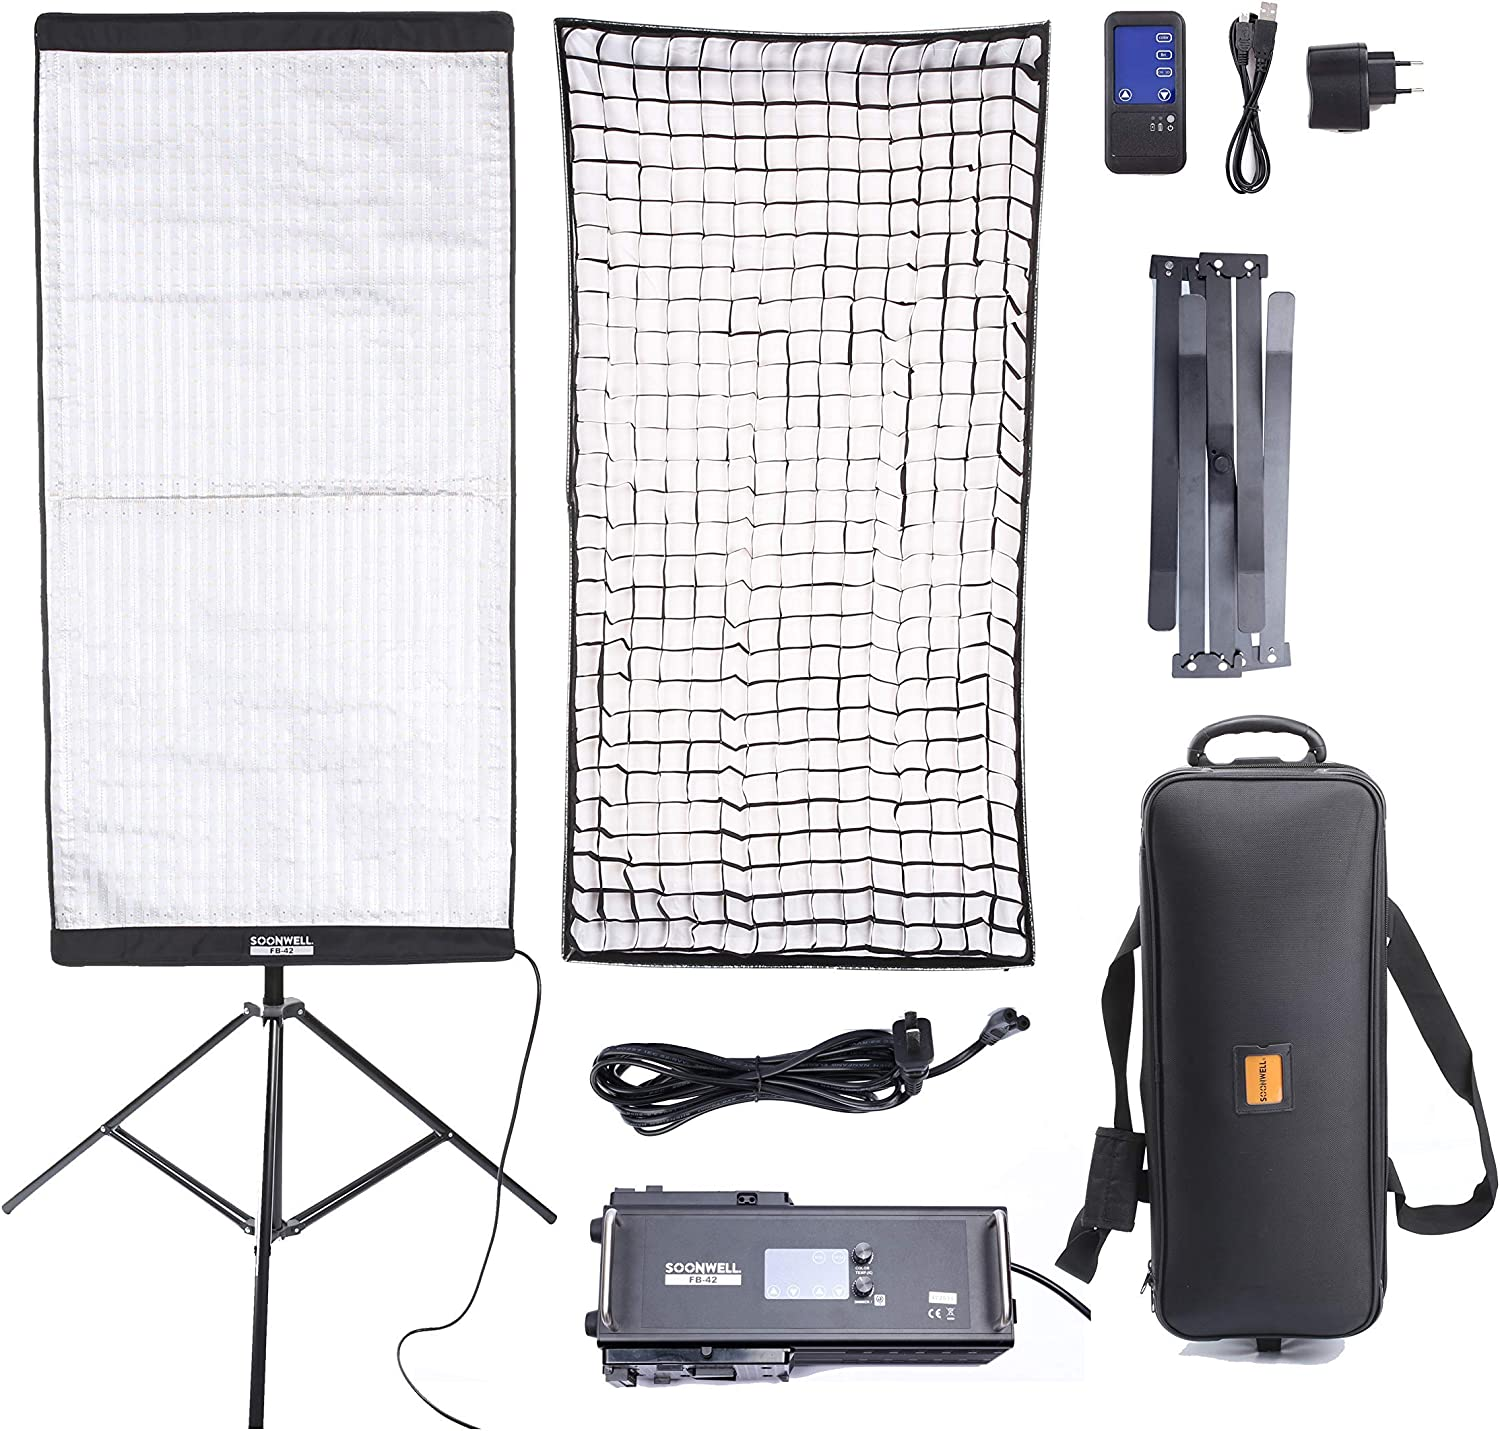 SOONWELL 4x2 ft Bi-Color Oversize LED Light Panel Mat,300W Flexible Photography LED Camera Video Studio Digital Light Panel with Touch LCD Panel Remote Controller 3000K-5600K